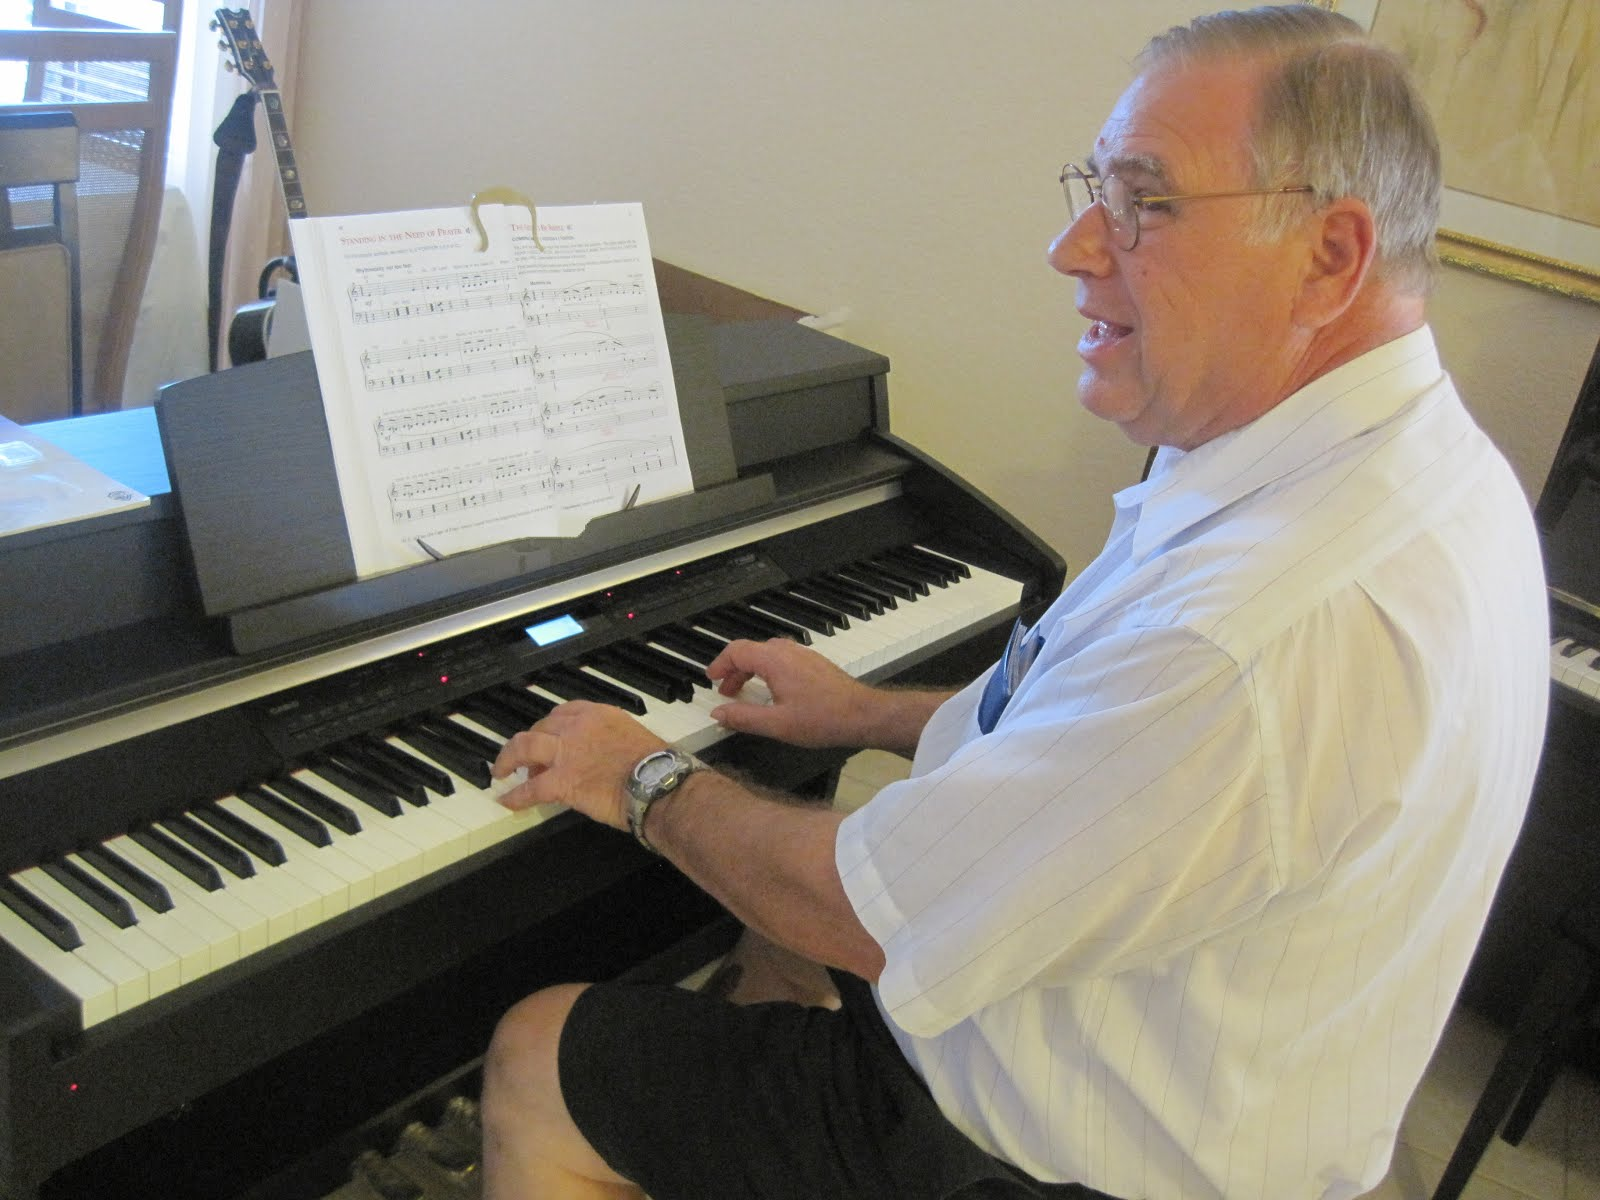 SENIOR PEOPLE should PLAY MUSIC for Wellness of Mind, Body, & Soul!